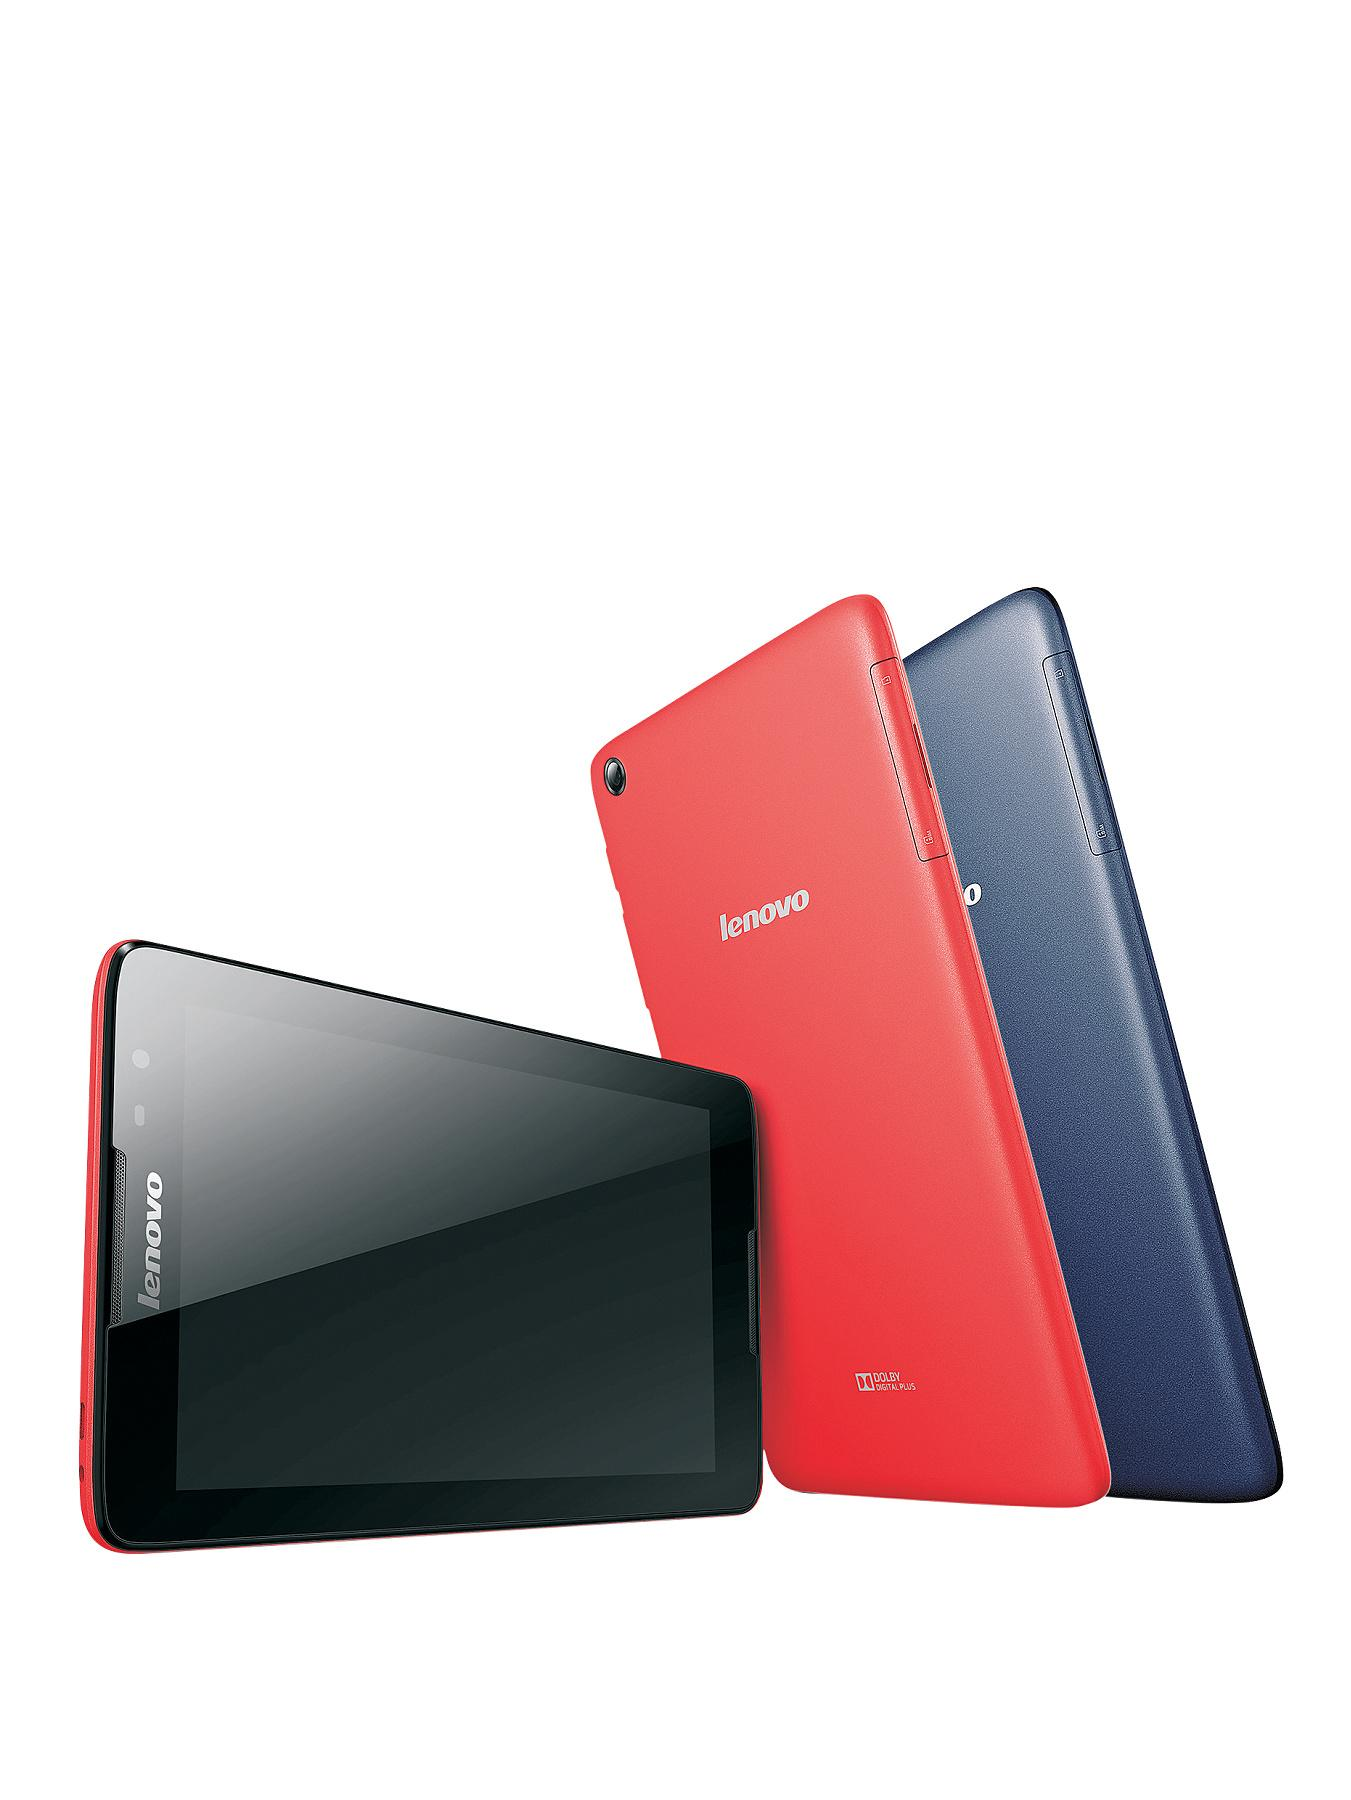 Lenovo Tab A8-50 Wi-Fi plus 3G Quad Core Processor, 1Gb RAM 16Gb EMMC Storage, Wi-Fi, 8 inch Touchscreen Tablet - Red, Red